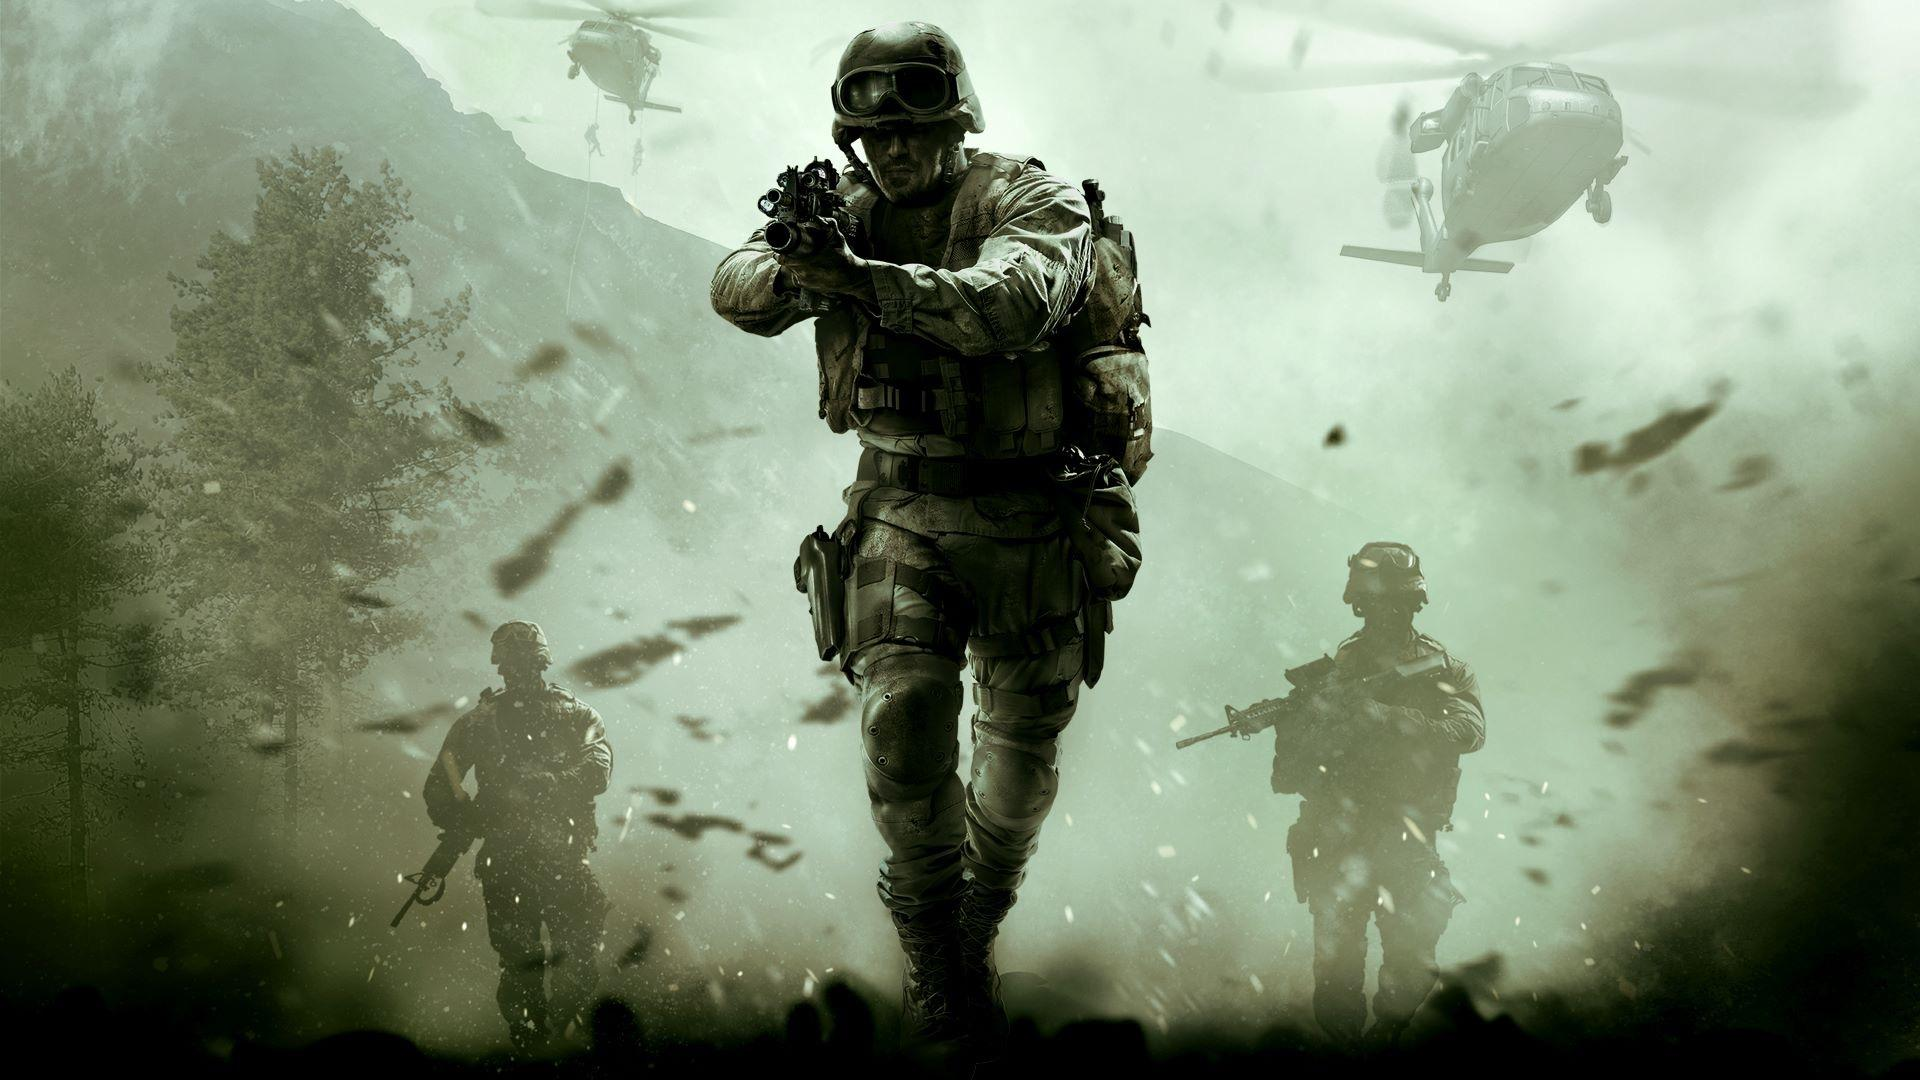 RUMOR: Call of Duty: 'Modern Warfare' is the CoD 2019 title